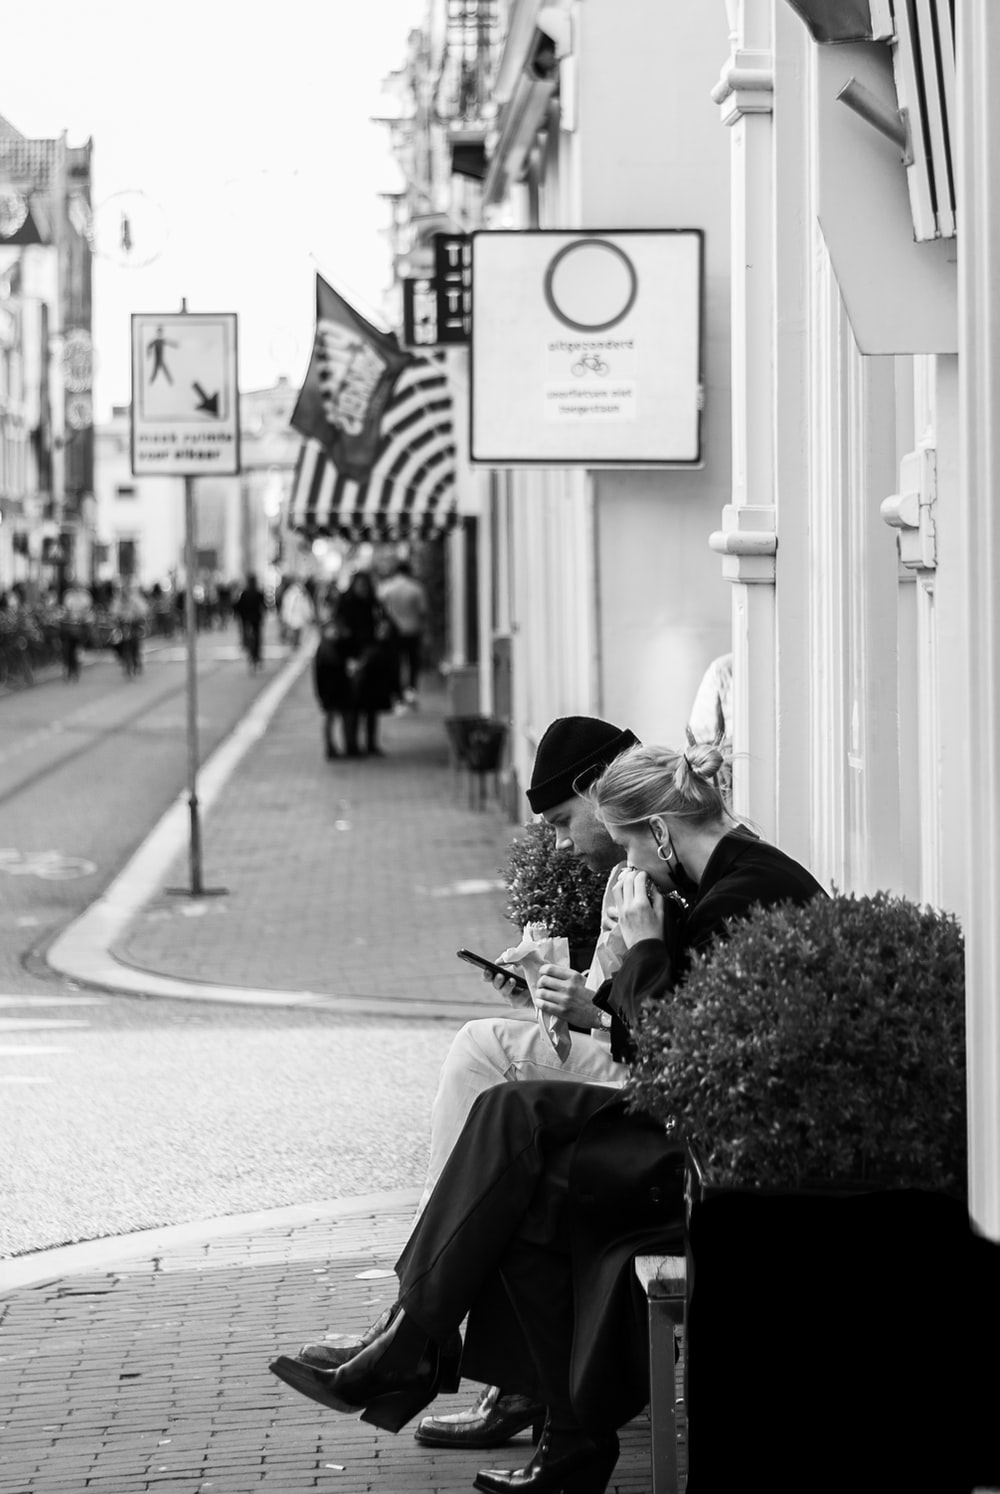 grayscale photo of woman in black jacket and black pants sitting on sidewalk